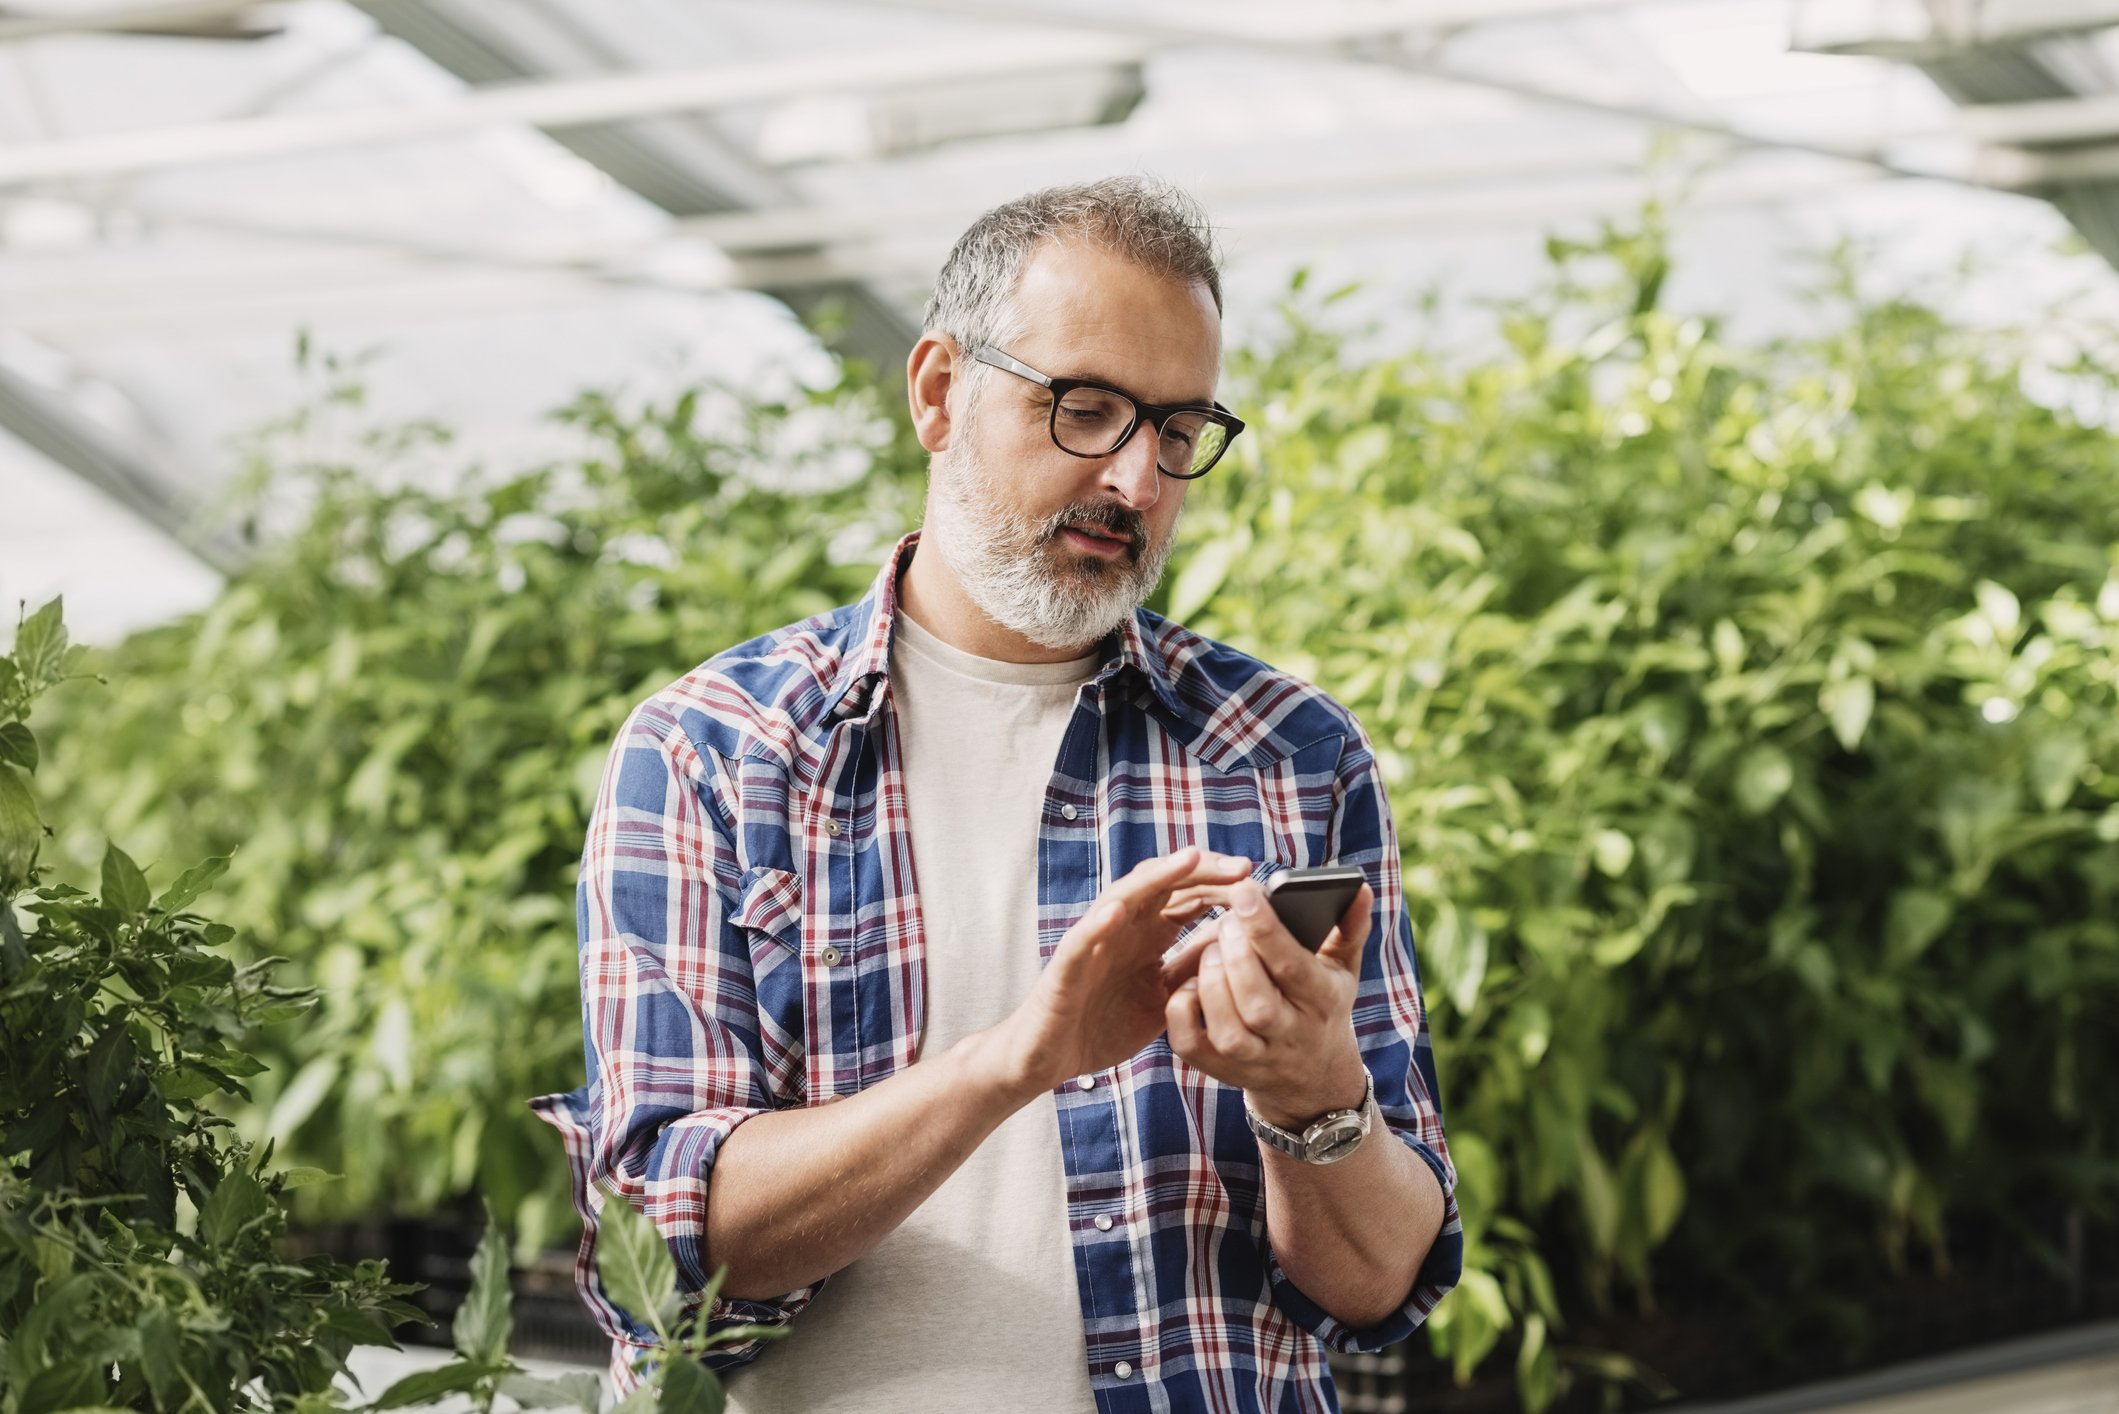 Mature man using mobile phone in greenhouse | Photo: Getty Images